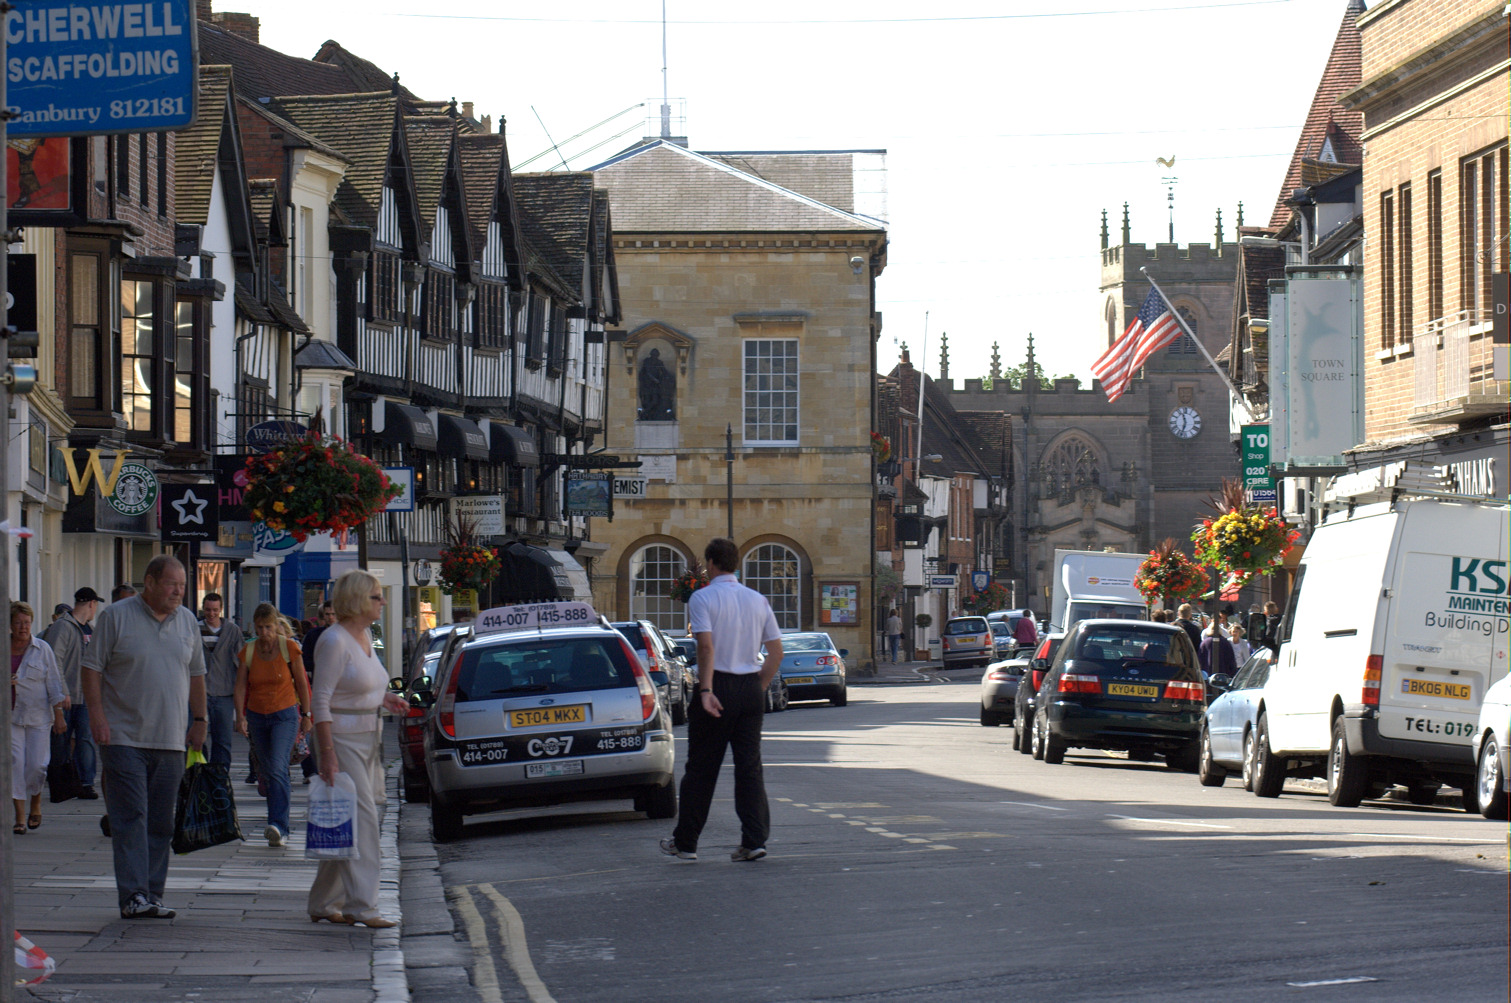 Stratford-upon-Avon showing the Town Hall and timbered buildings